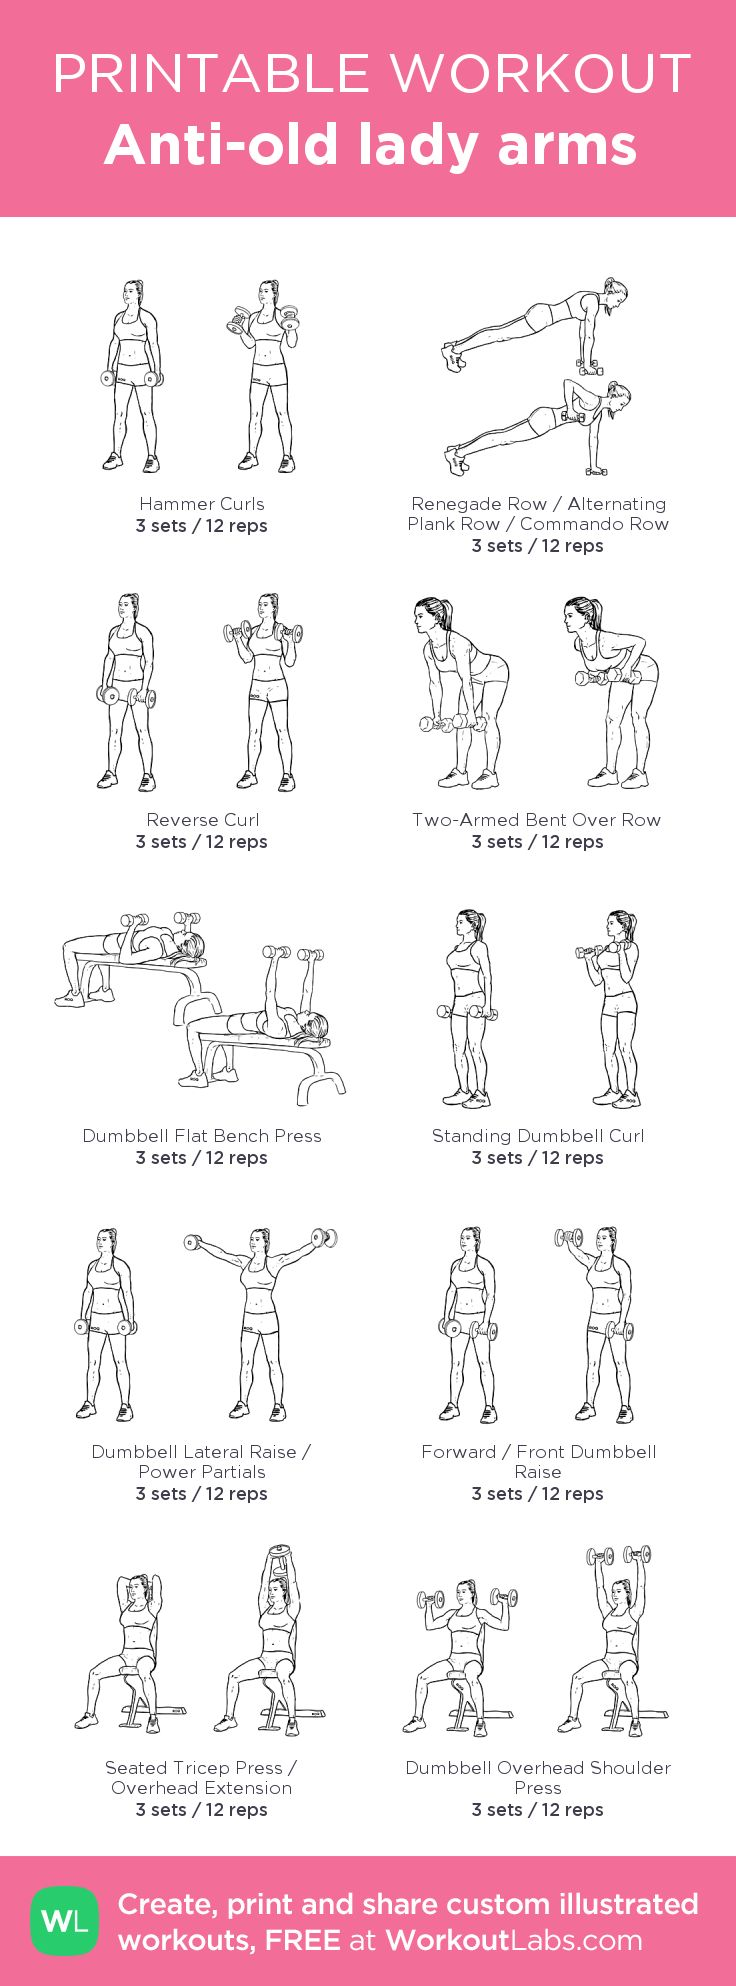 Anti-old lady arms: my visual workout created at WorkoutLabs.com • Click through to customize and download as a FREE PDF! #customworkout